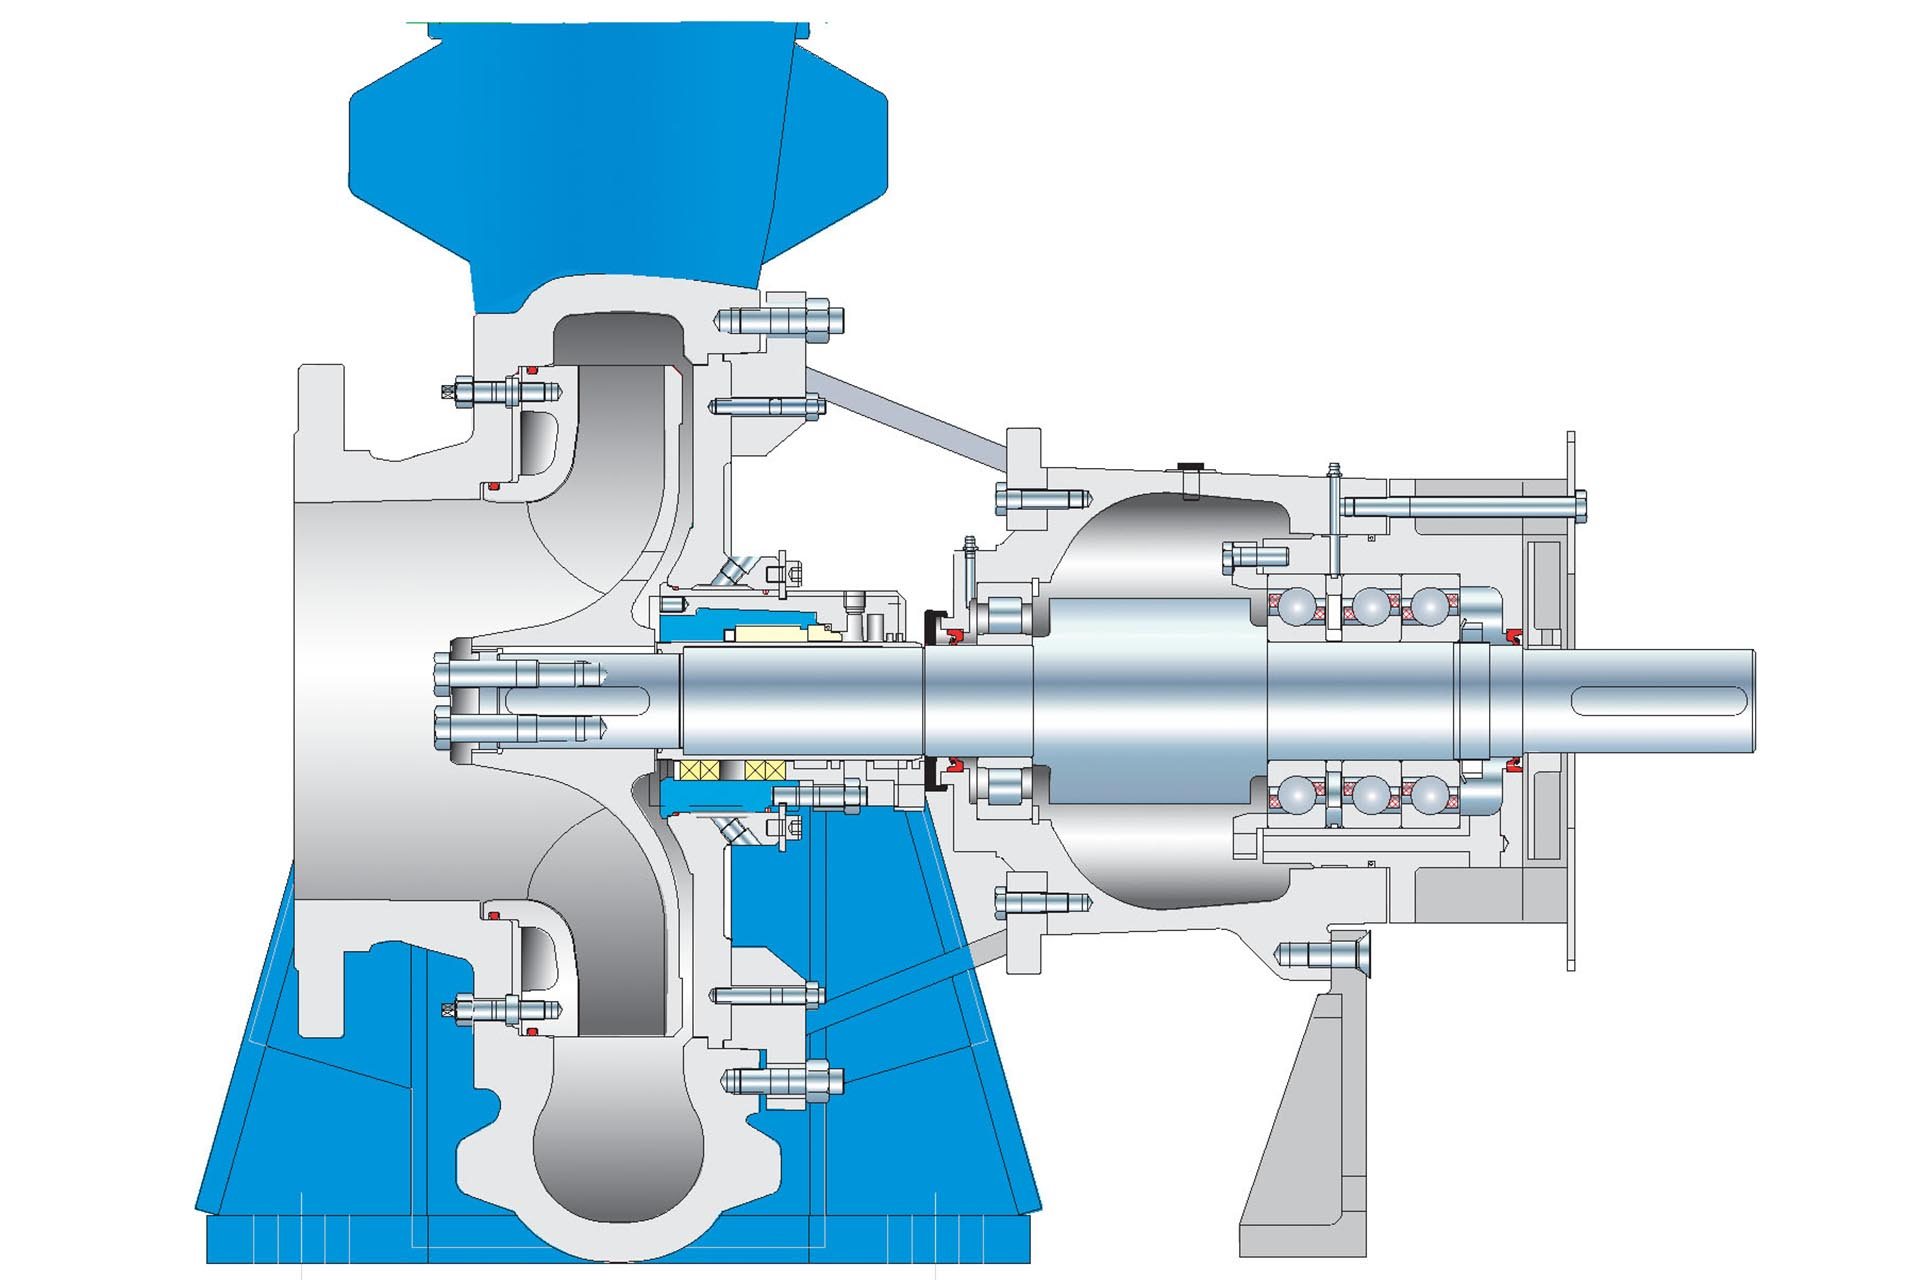 Cross-section of a BK centerline-supported end suction single stage centrifugal pump